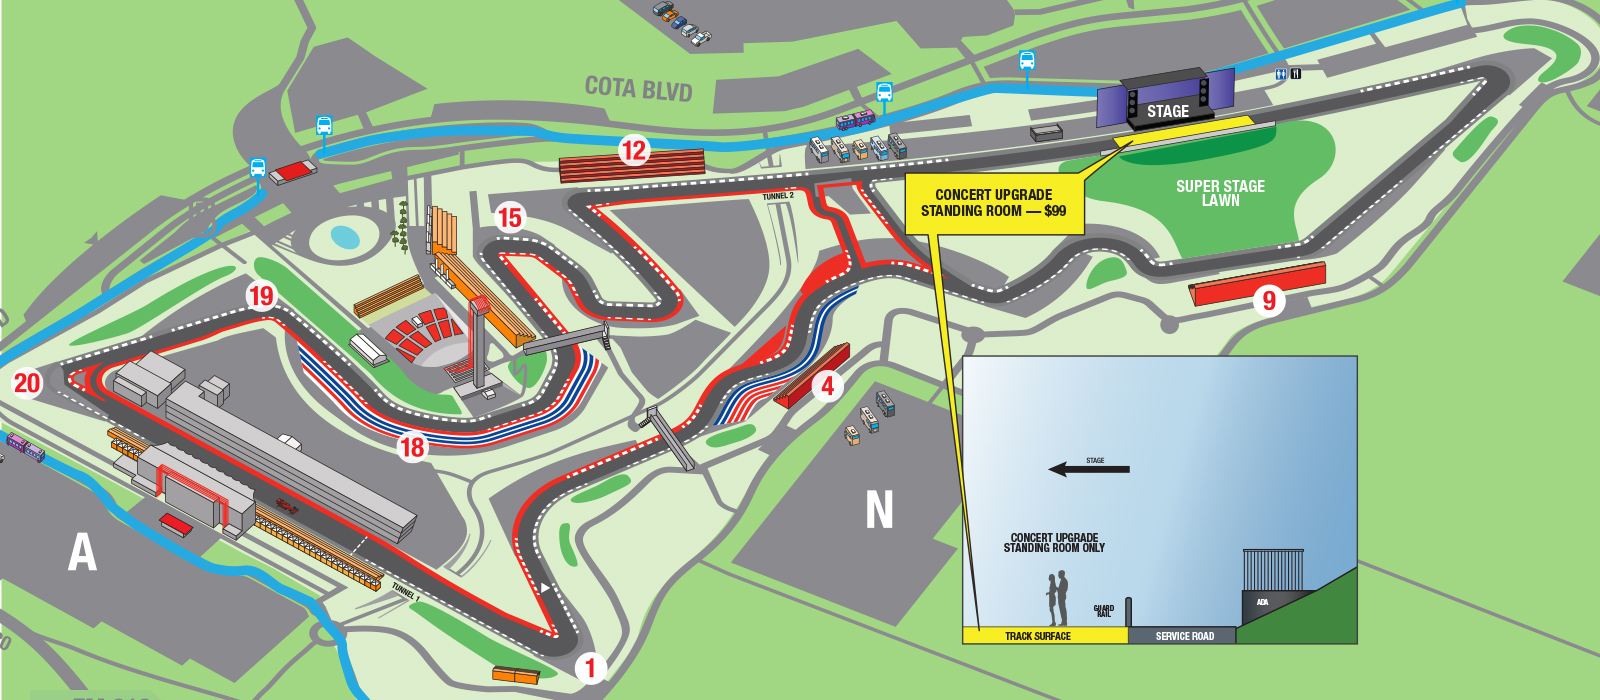 Formula 1 2018 Map of stage